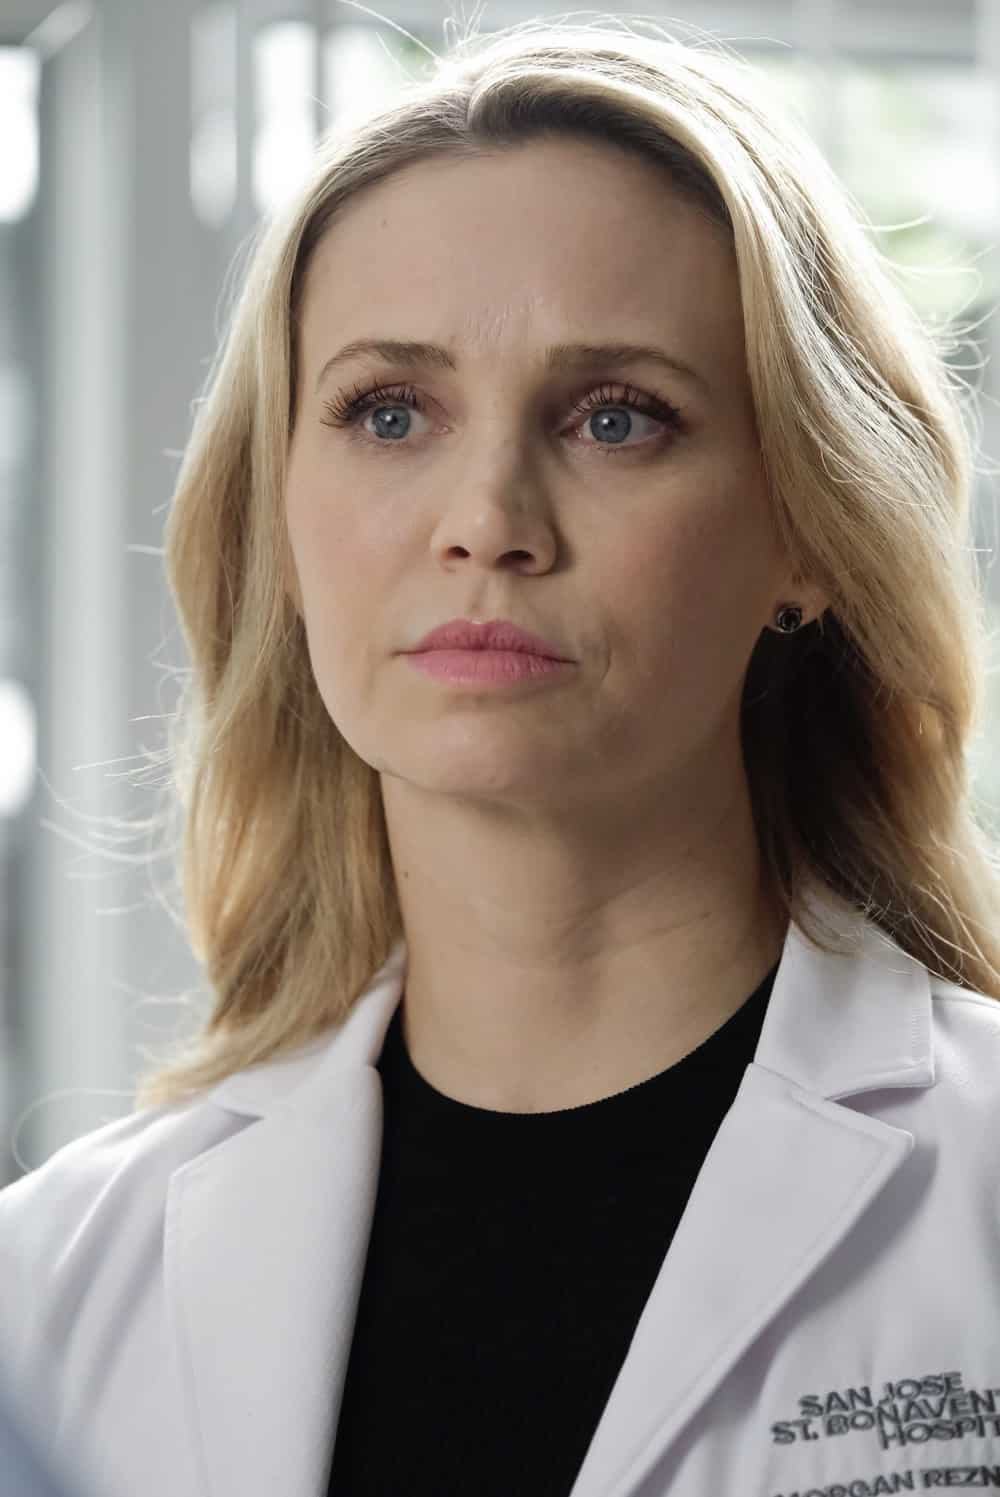 """THE GOOD DOCTOR Season 4 Episode 18 - """"Forgive or Forget"""" – Shaun and Lea go on a camping trip to distract themselves from their grief over their miscarriage. Meanwhile, Morgan and Park argue about the best course of treatment for their patient on an all-new episode of """"The Good Doctor,"""" MONDAY, MAY 24 (10:00-11:00 p.m. EDT), on ABC. (ABC/Jeff Weddell) FIONA GUBELMANN"""